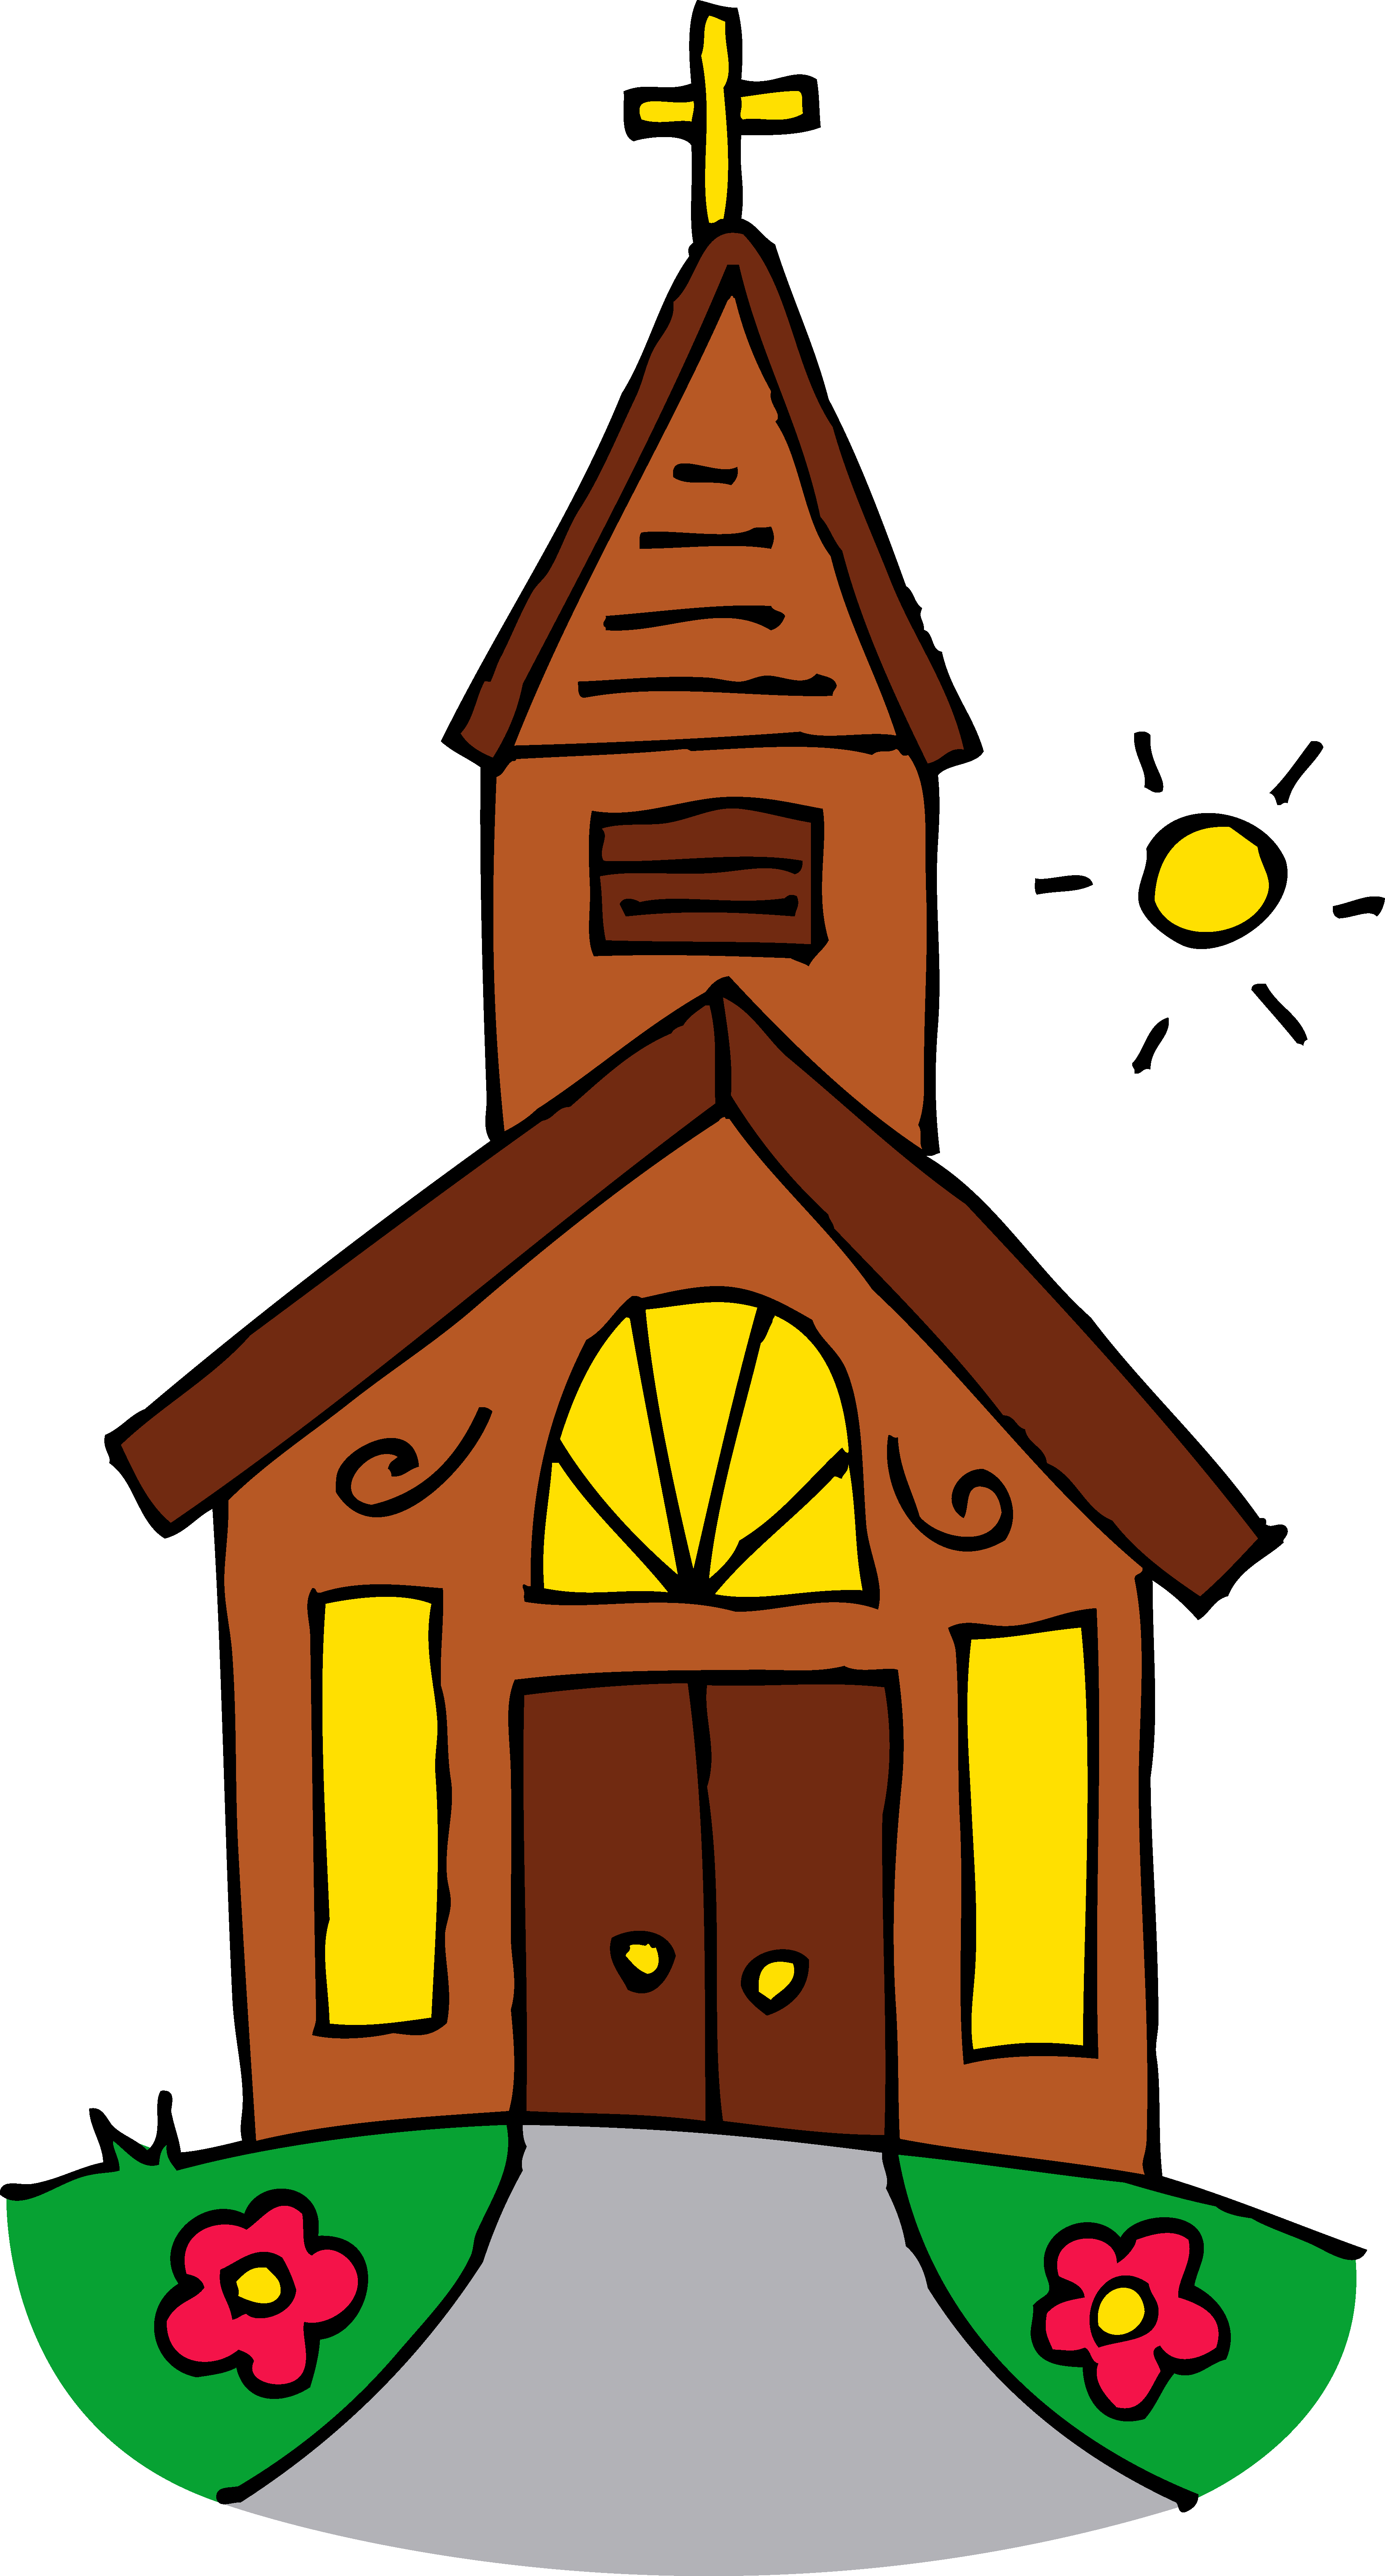 Free Cartoon Church Cliparts, Download Free Clip Art, Free.